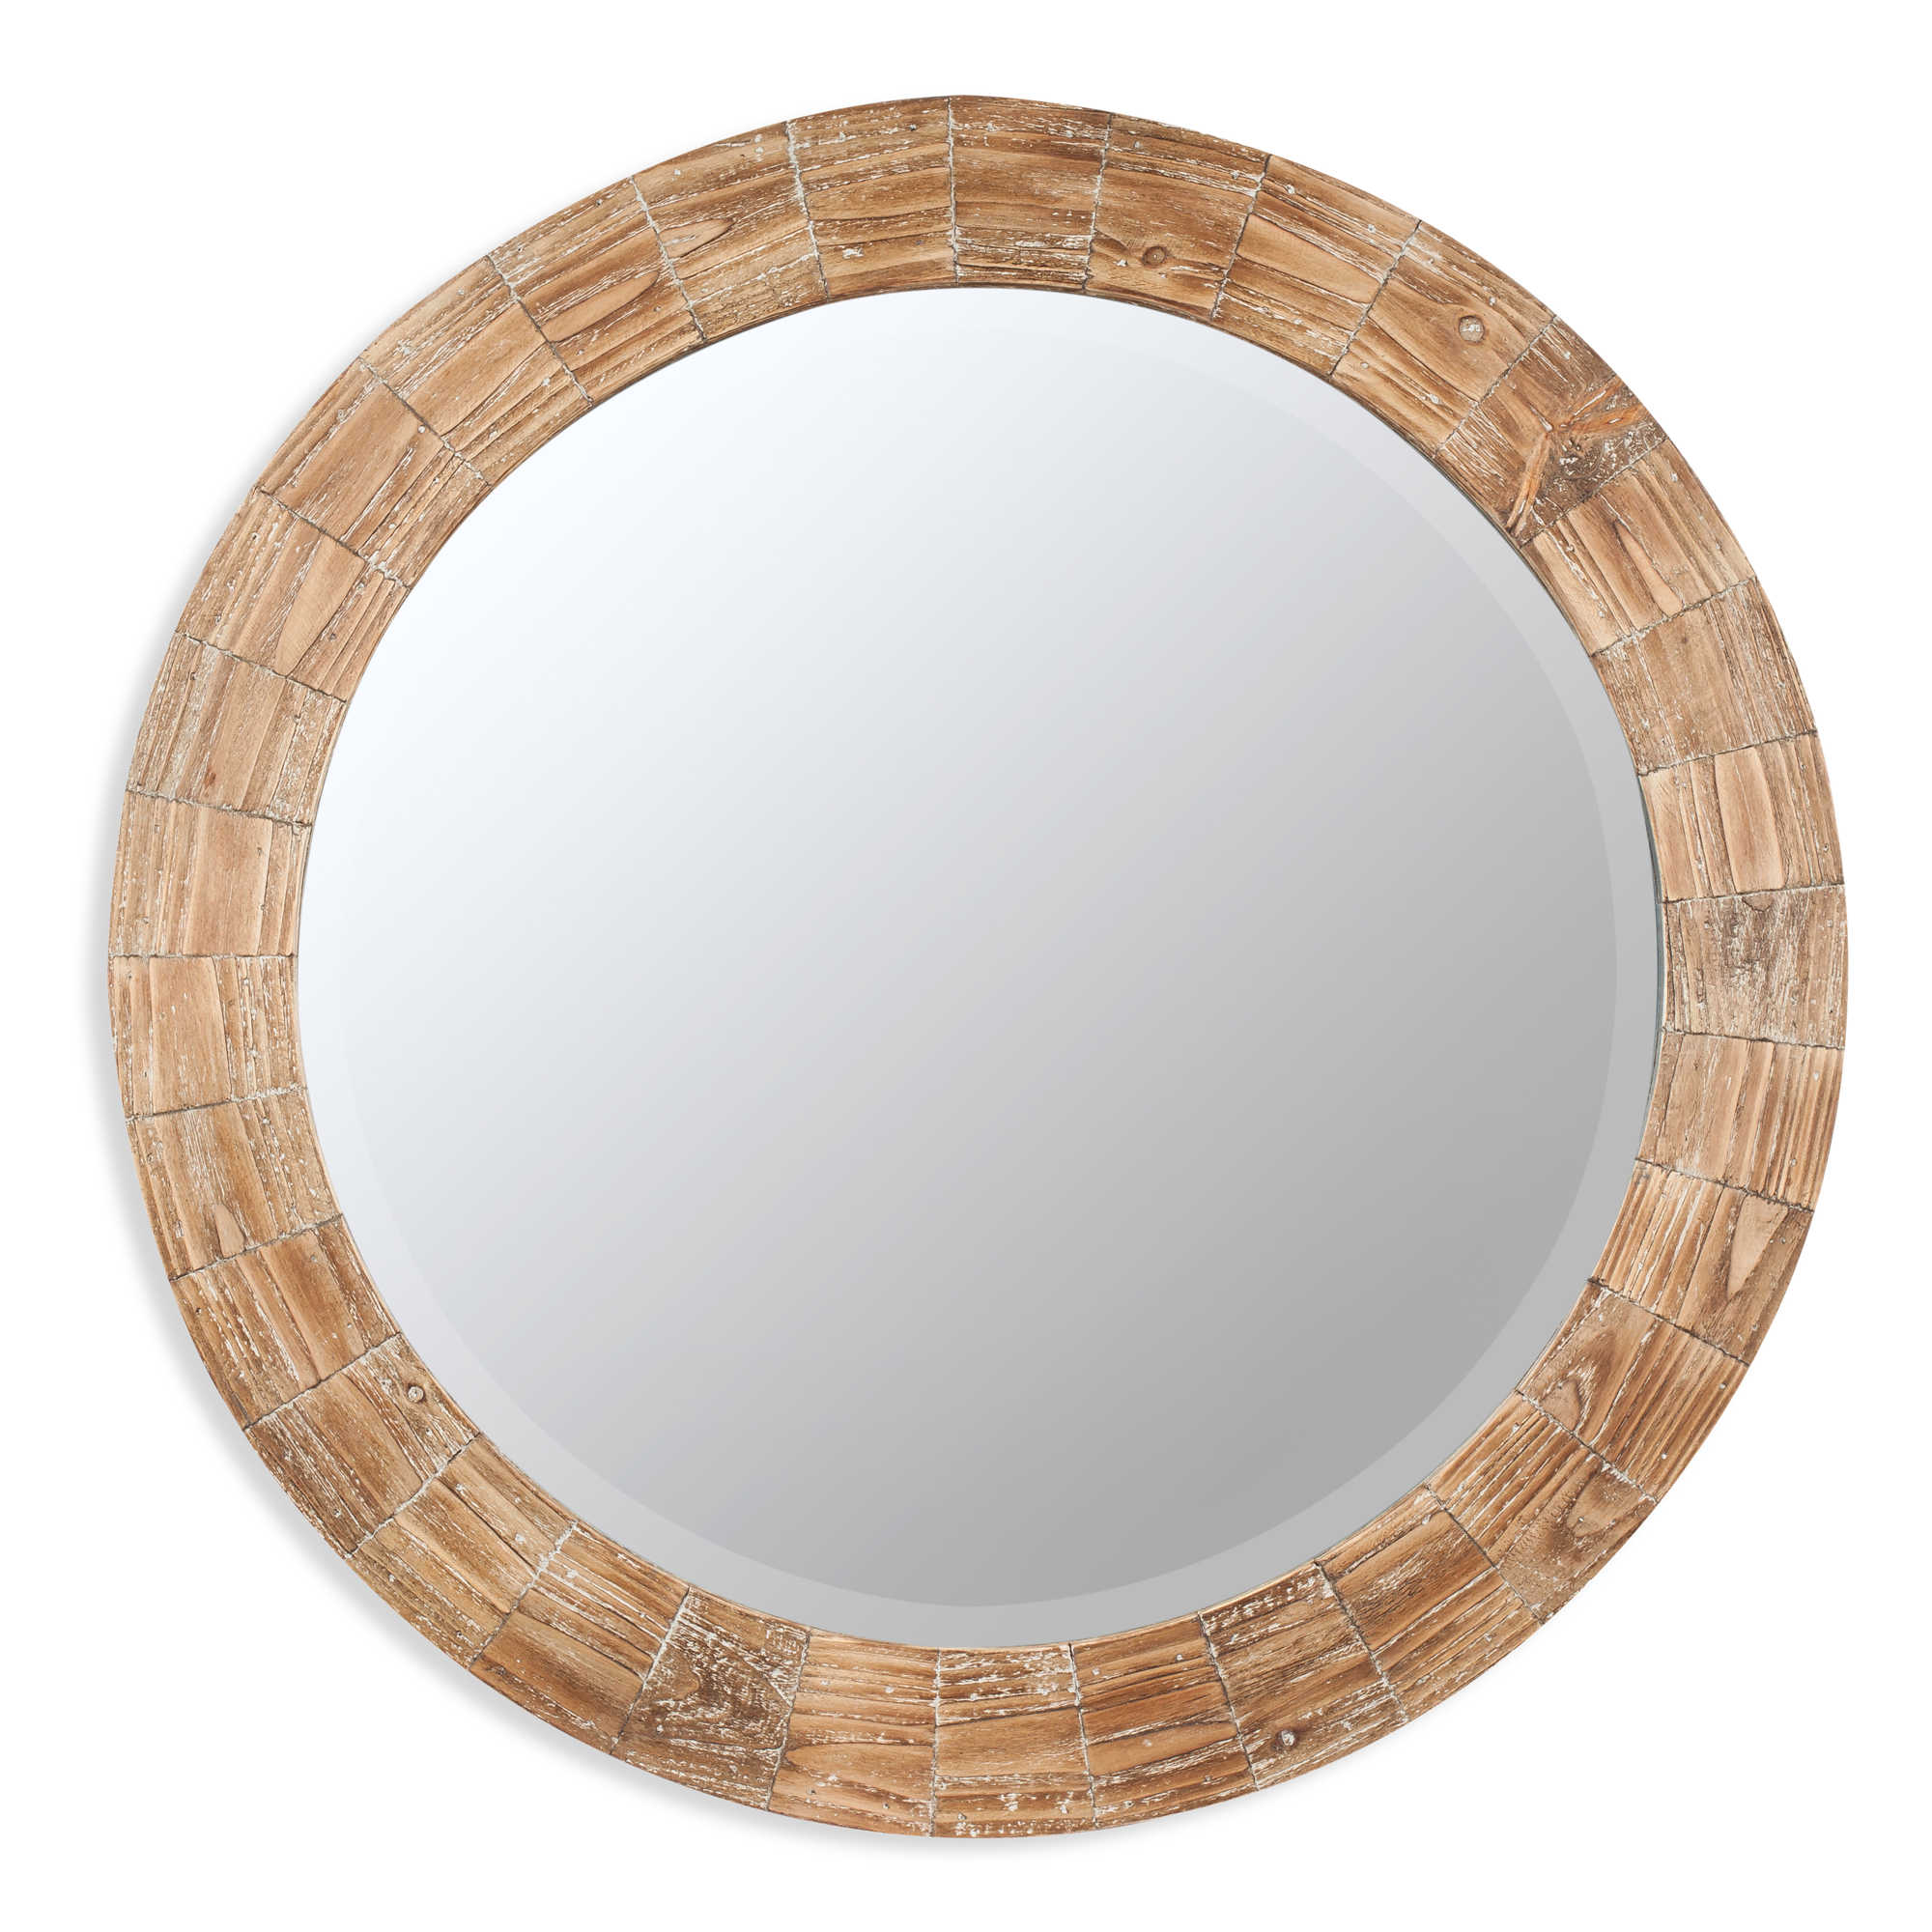 Round wooden framed mirrors images Round framed mirror